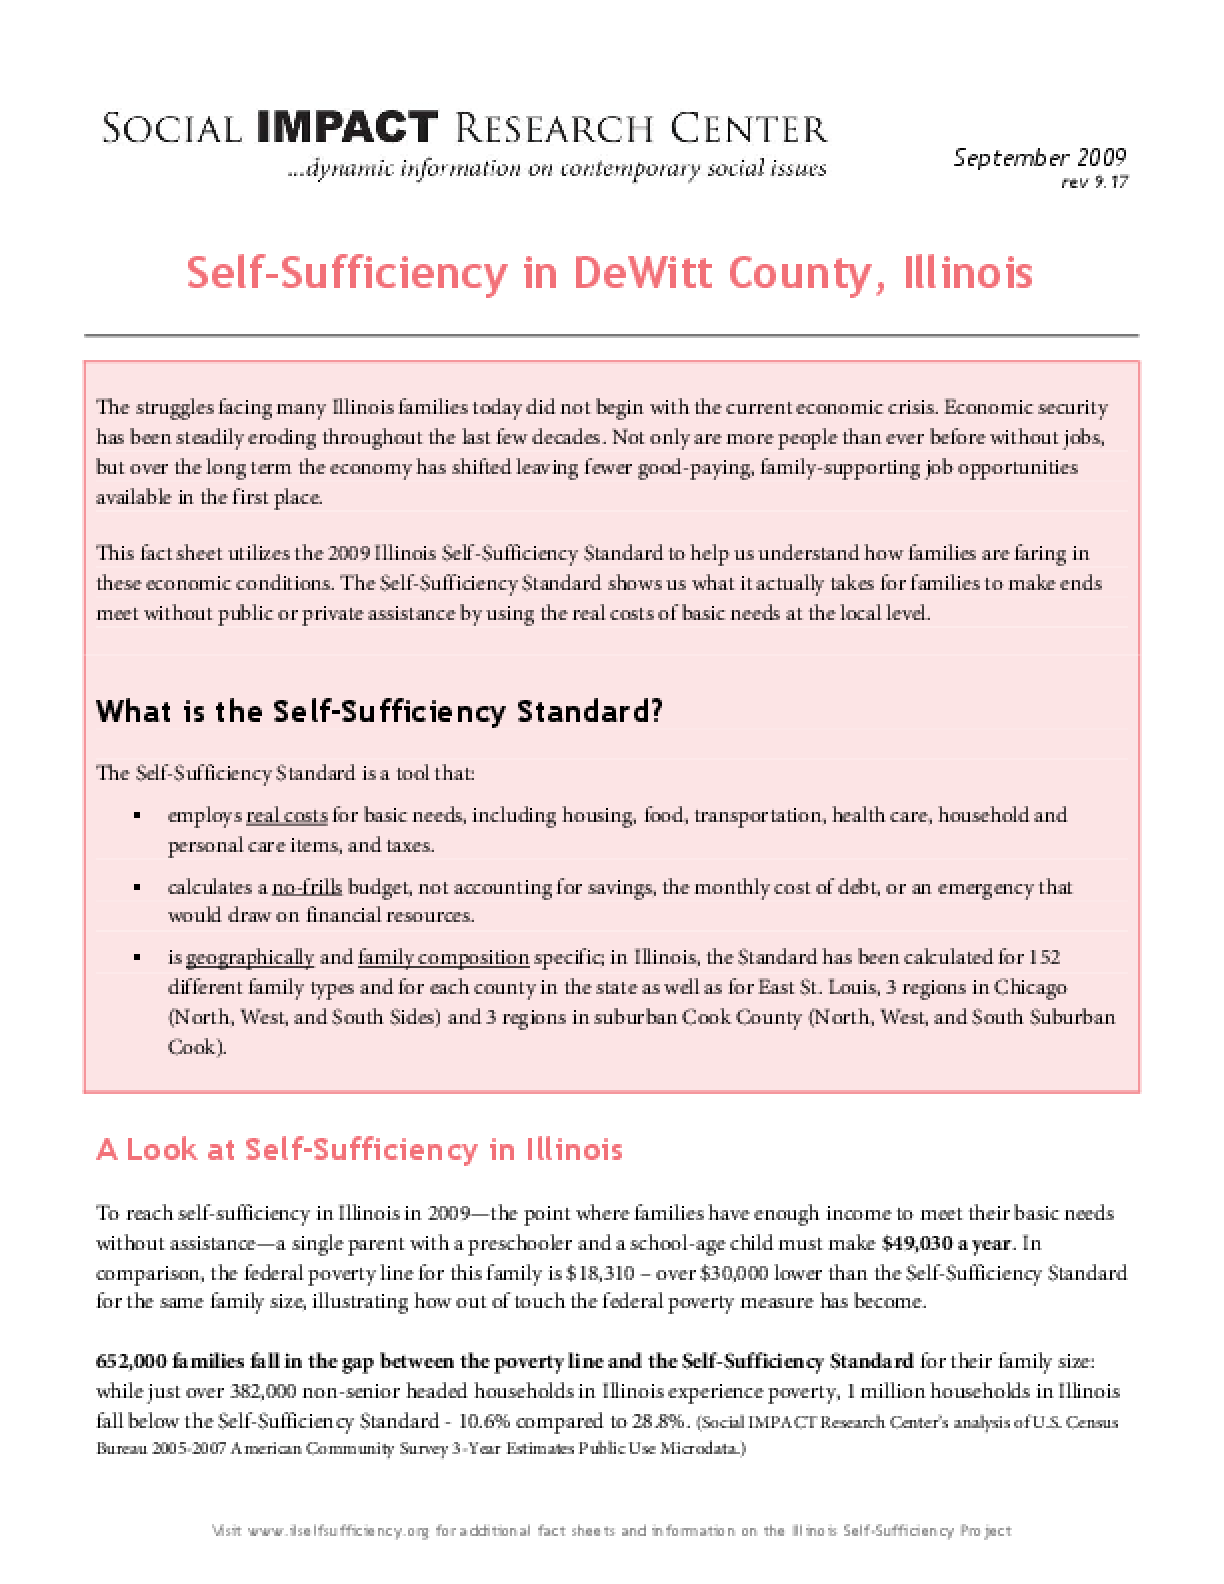 Self-Sufficiency in DeWitt County, Illinois